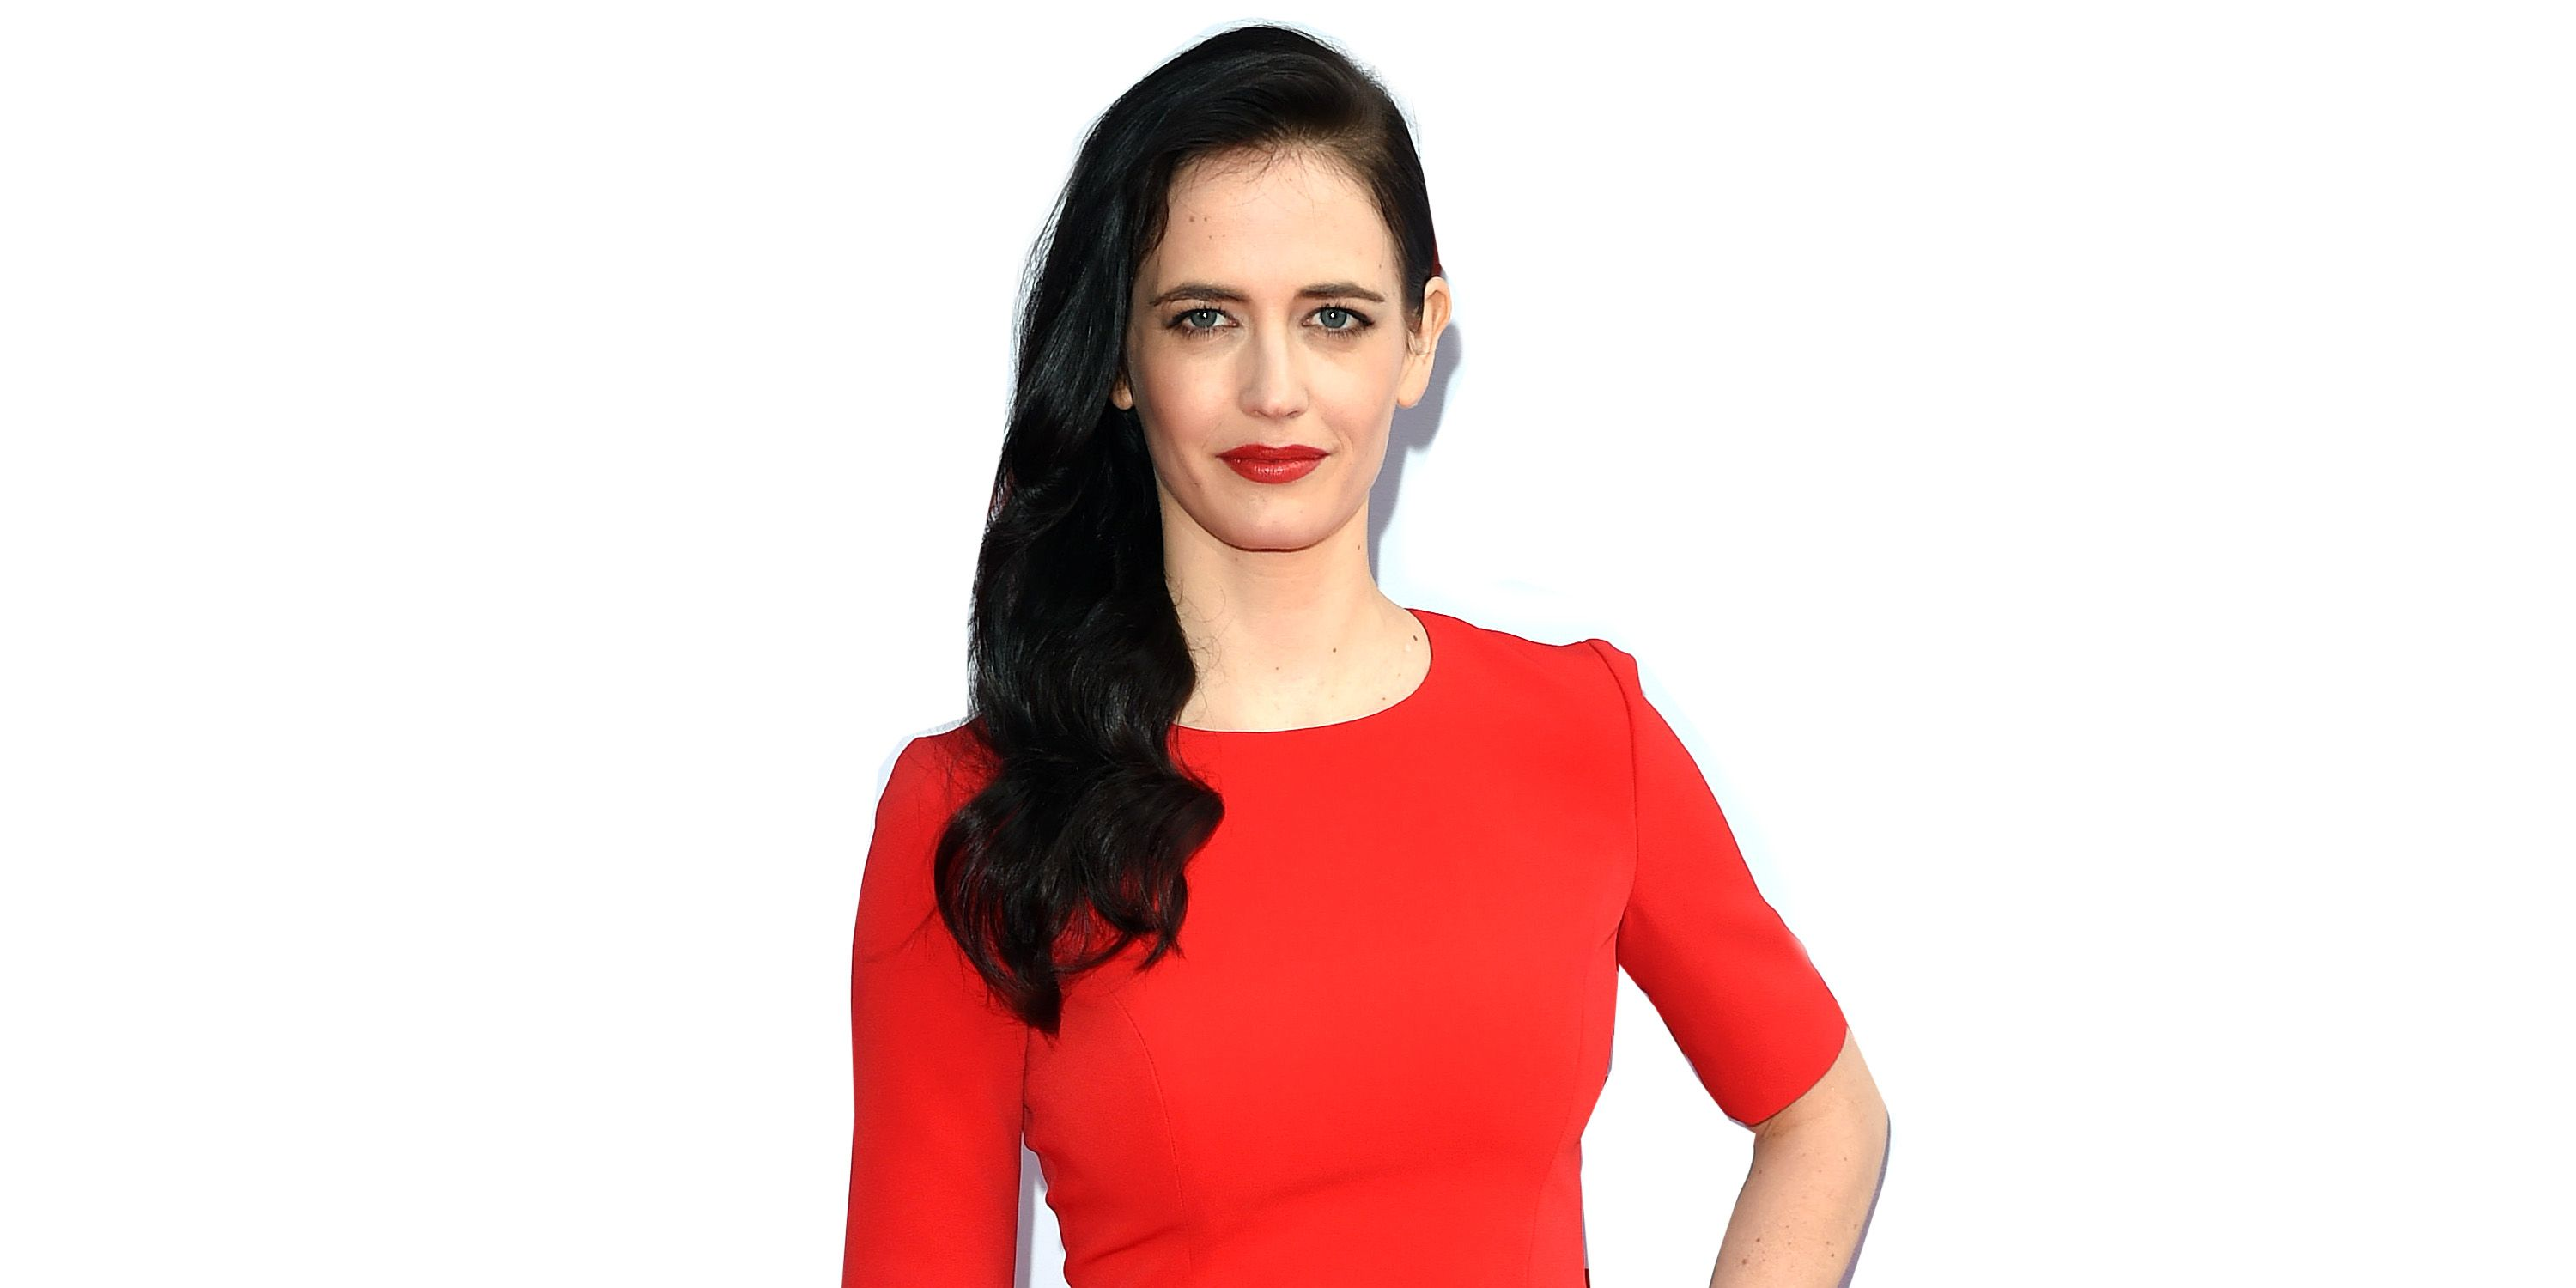 Eva Green On Prepping For Nude Scenes In 300 Juicing And Her Hair 6 Beauty Tips From Eva Green